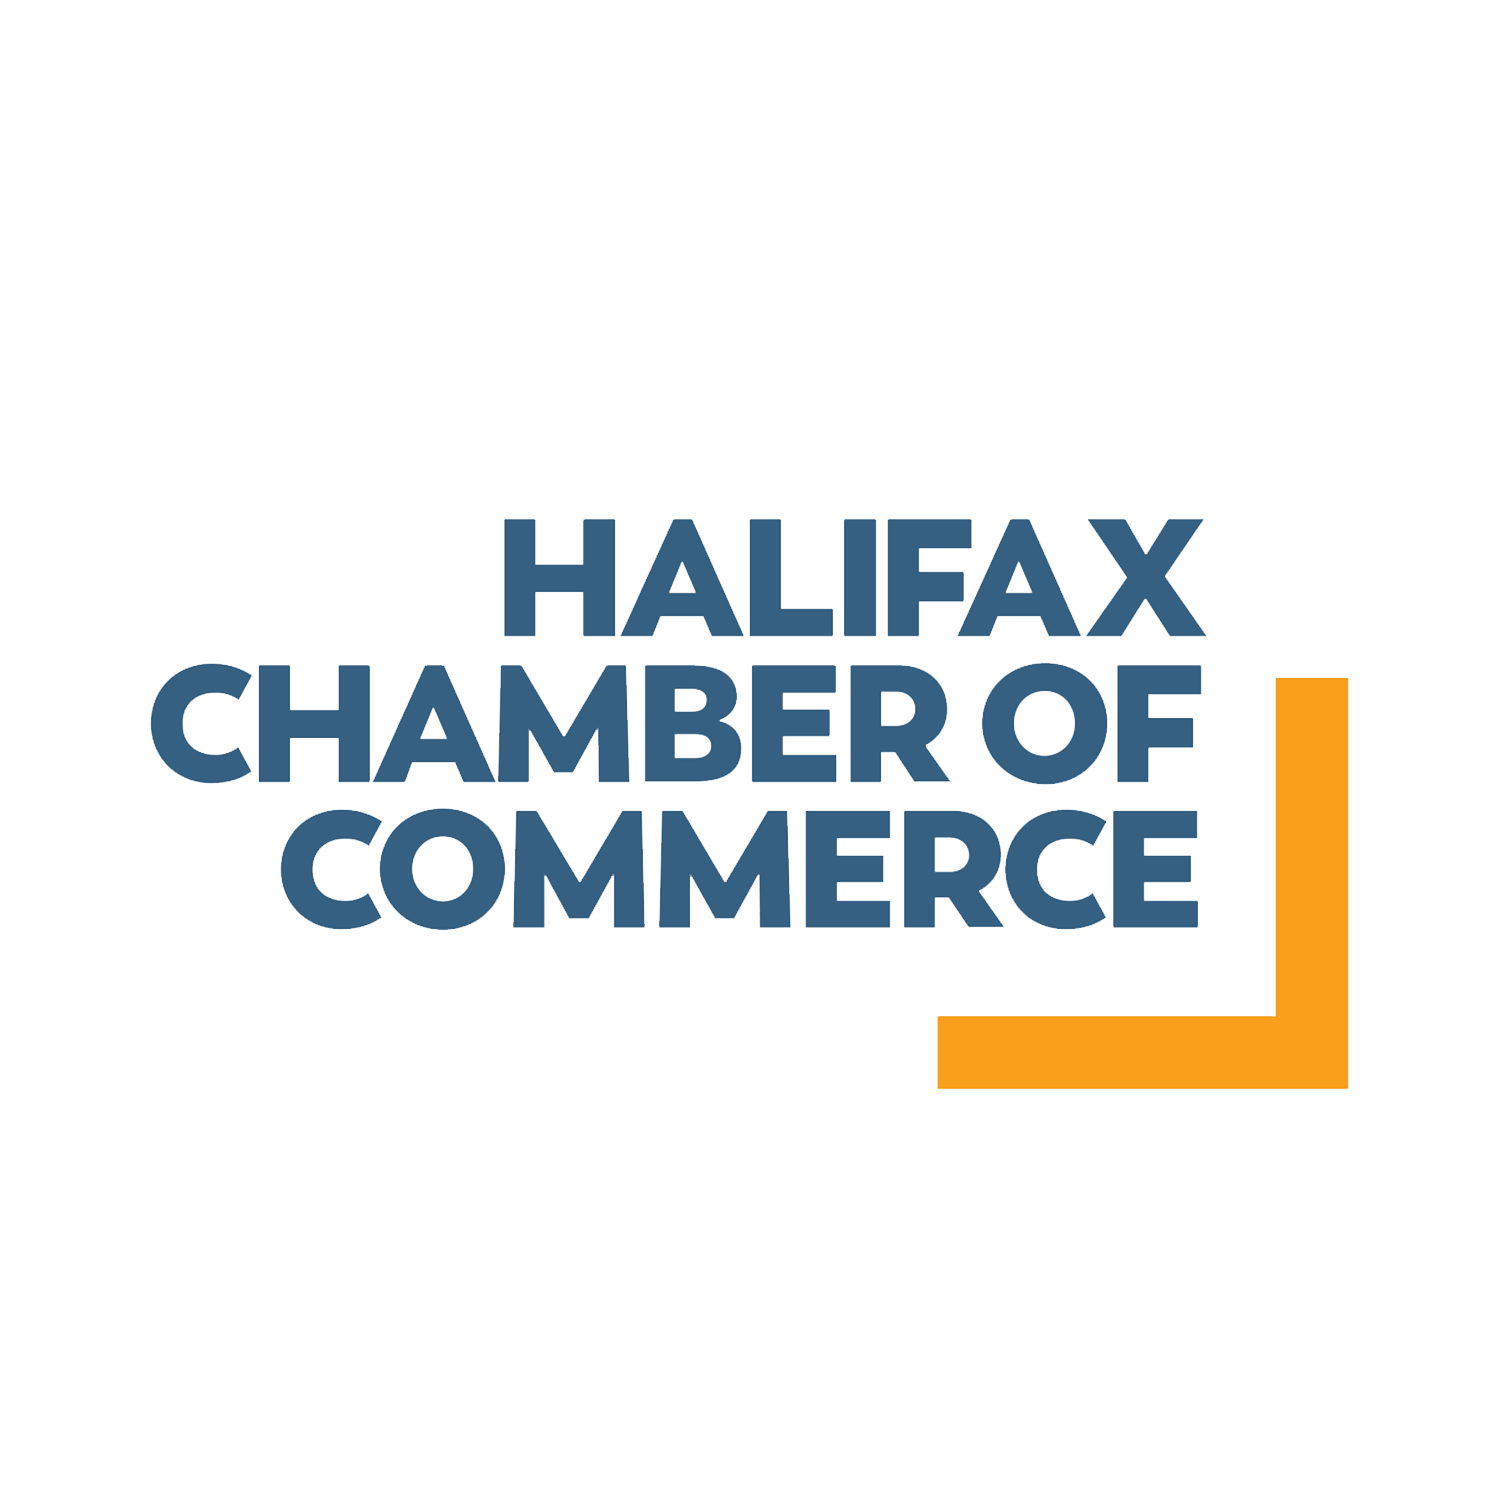 Halifax Chamber of Commerce.png